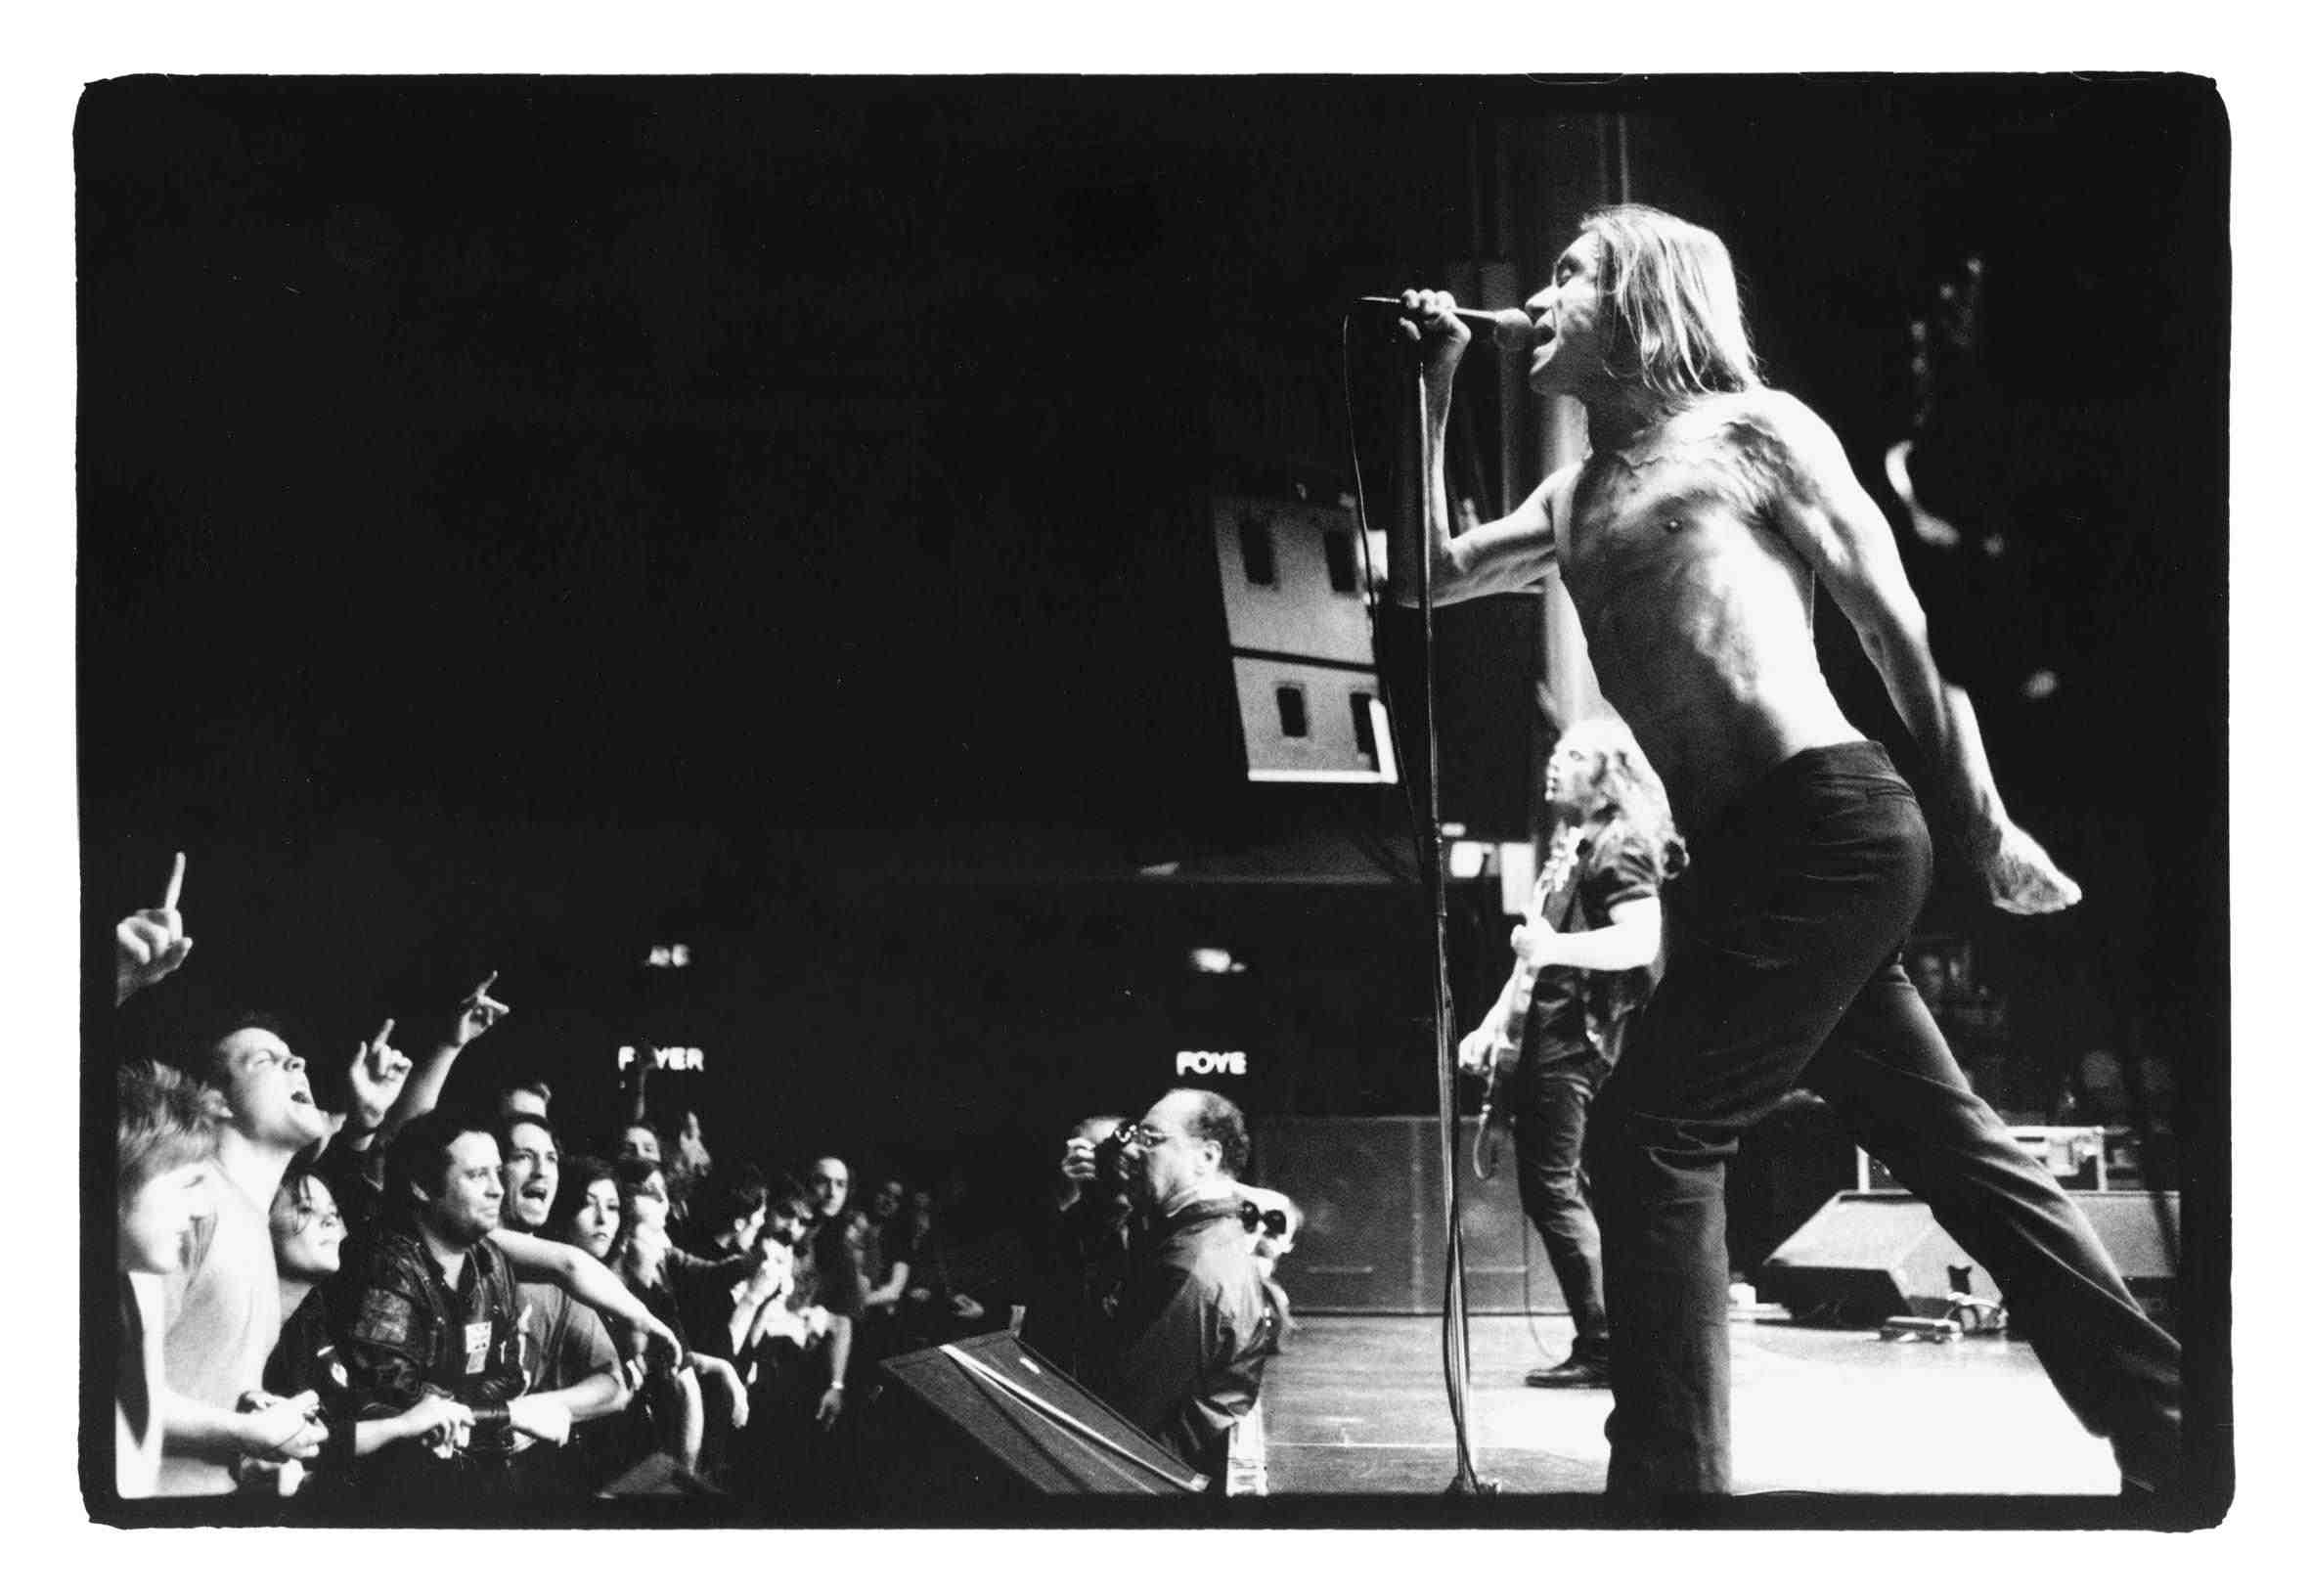 Atención coleccionistas: Iggy Pop versionando a Betty Davies para el aniversario de Light In The Attic